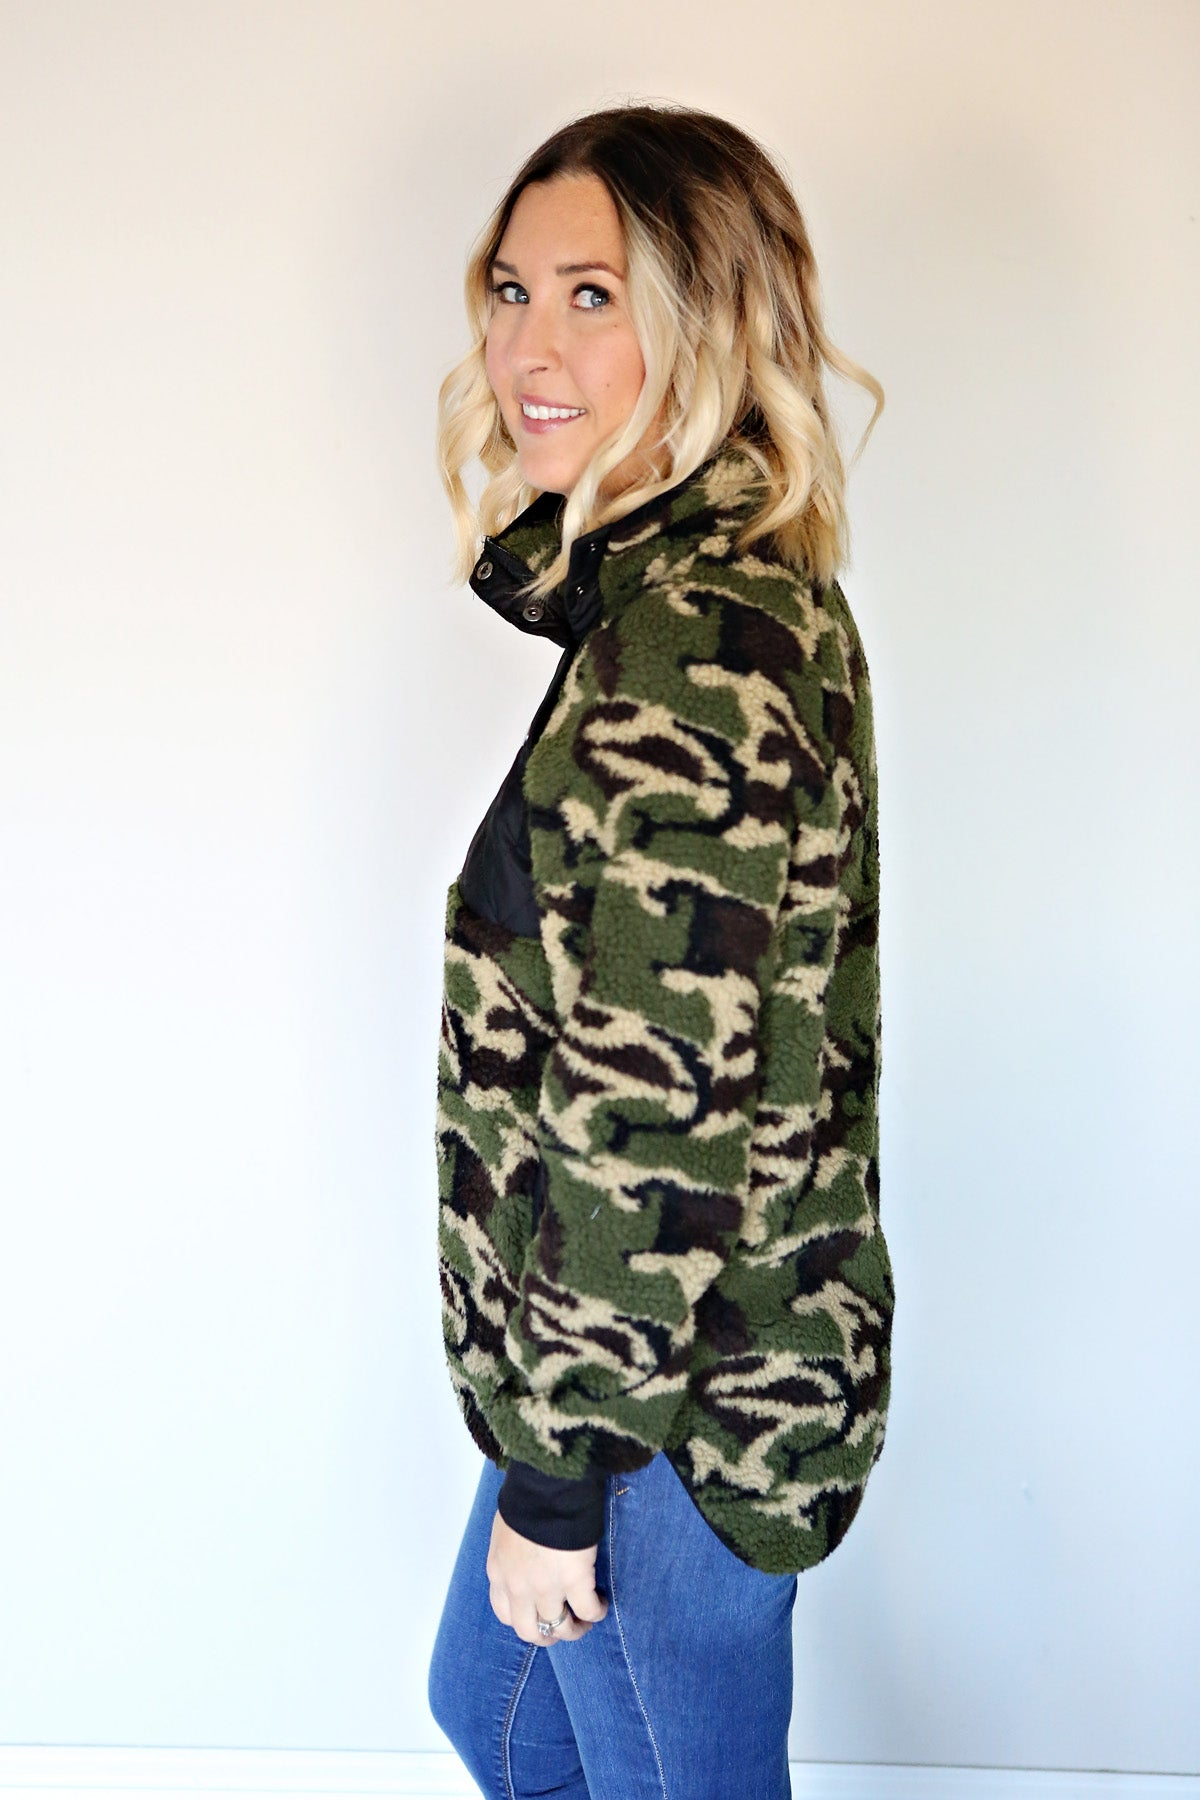 Talon Camo Pullover (TAKE 30% OFF WITH CODE MLKDAY)